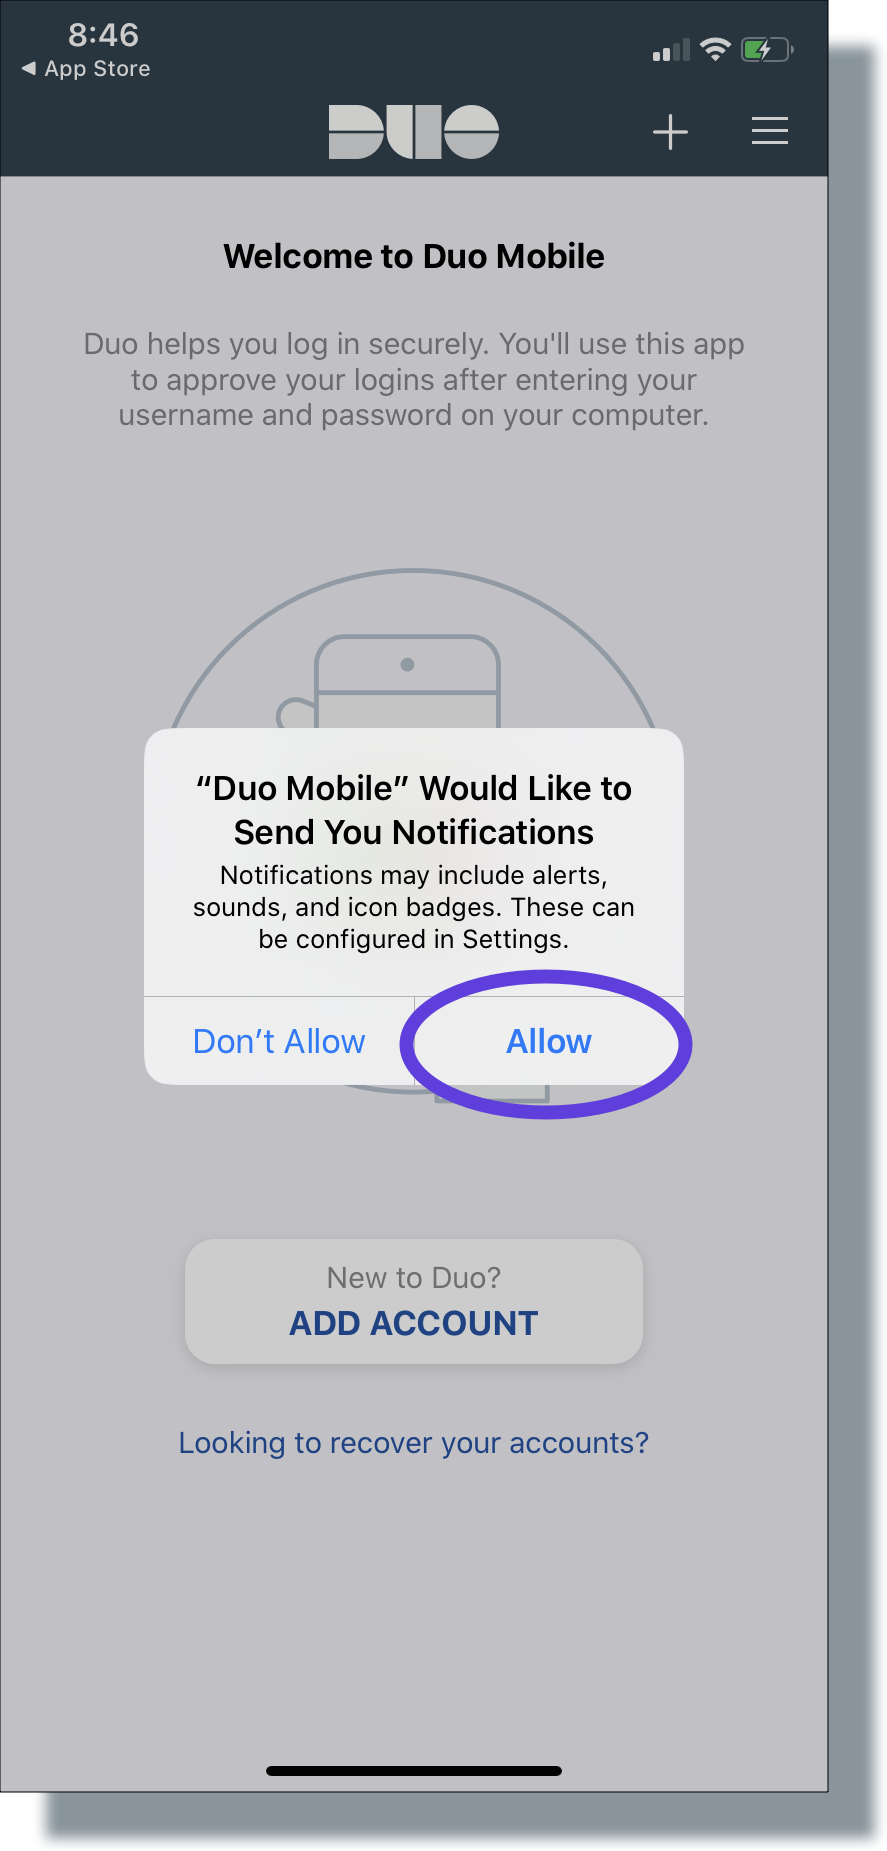 Tap 'Allow' to allow Duo notifications